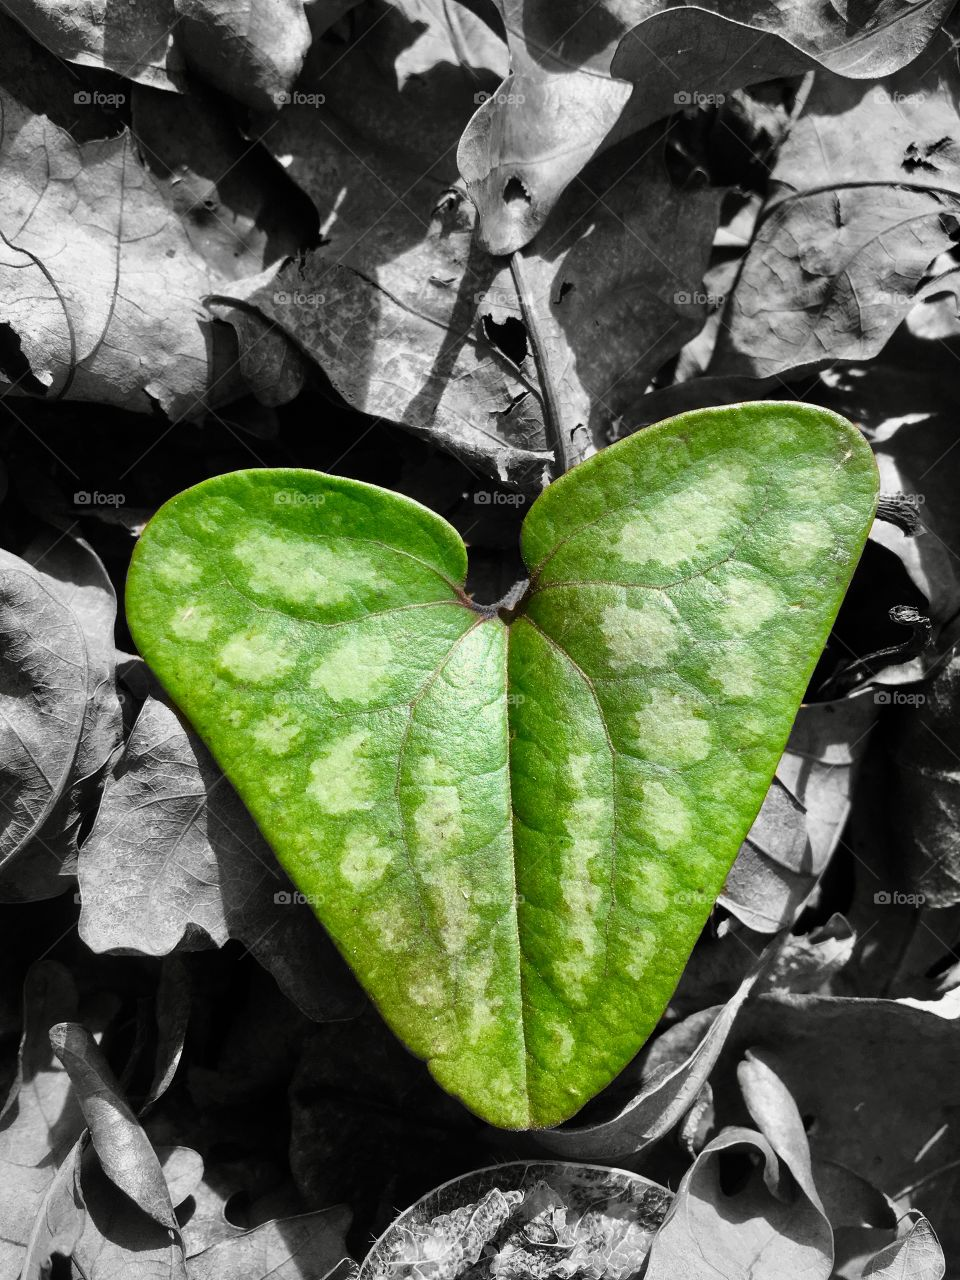 For the love of nature. A color pop edit of a green leaf among the grayscale of the foliage of the forest floor